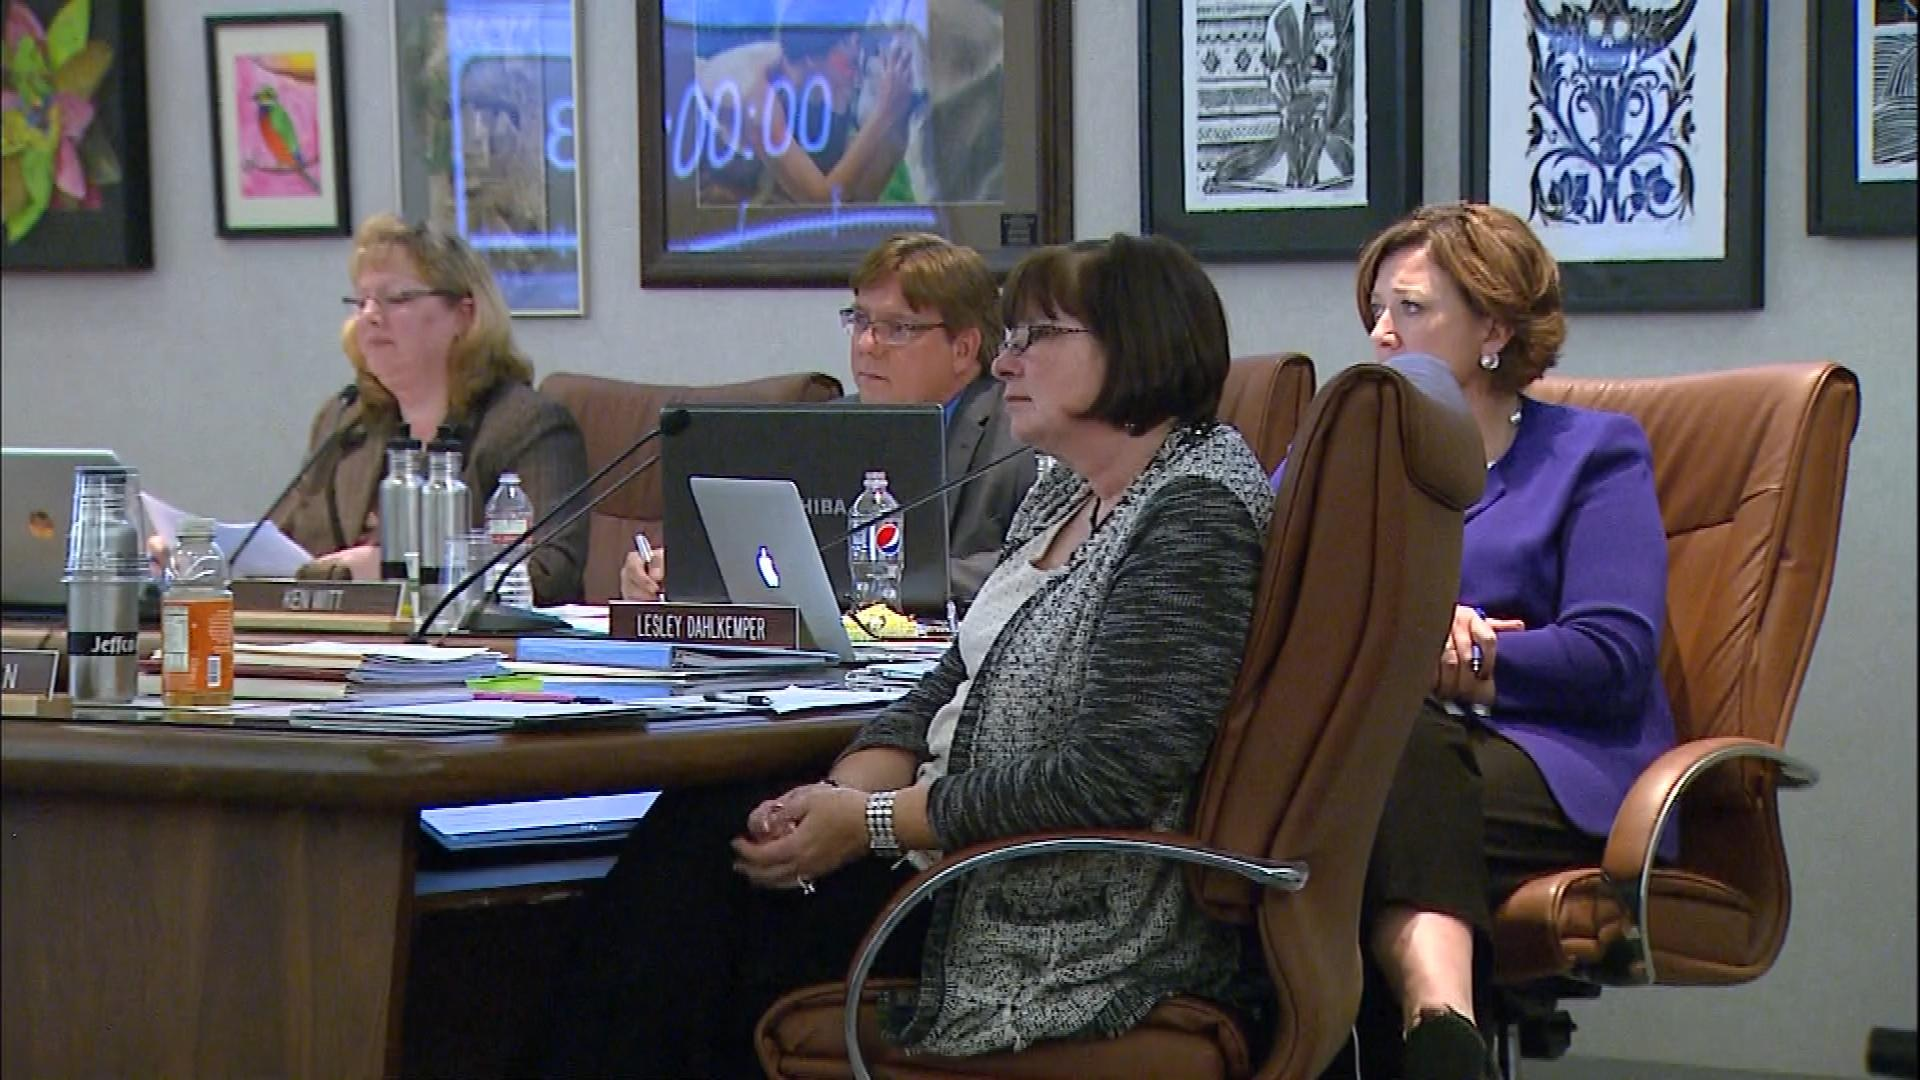 Members of the Jefferson County school board listen to the audience at its meeting Thursday. (credit: CBS)